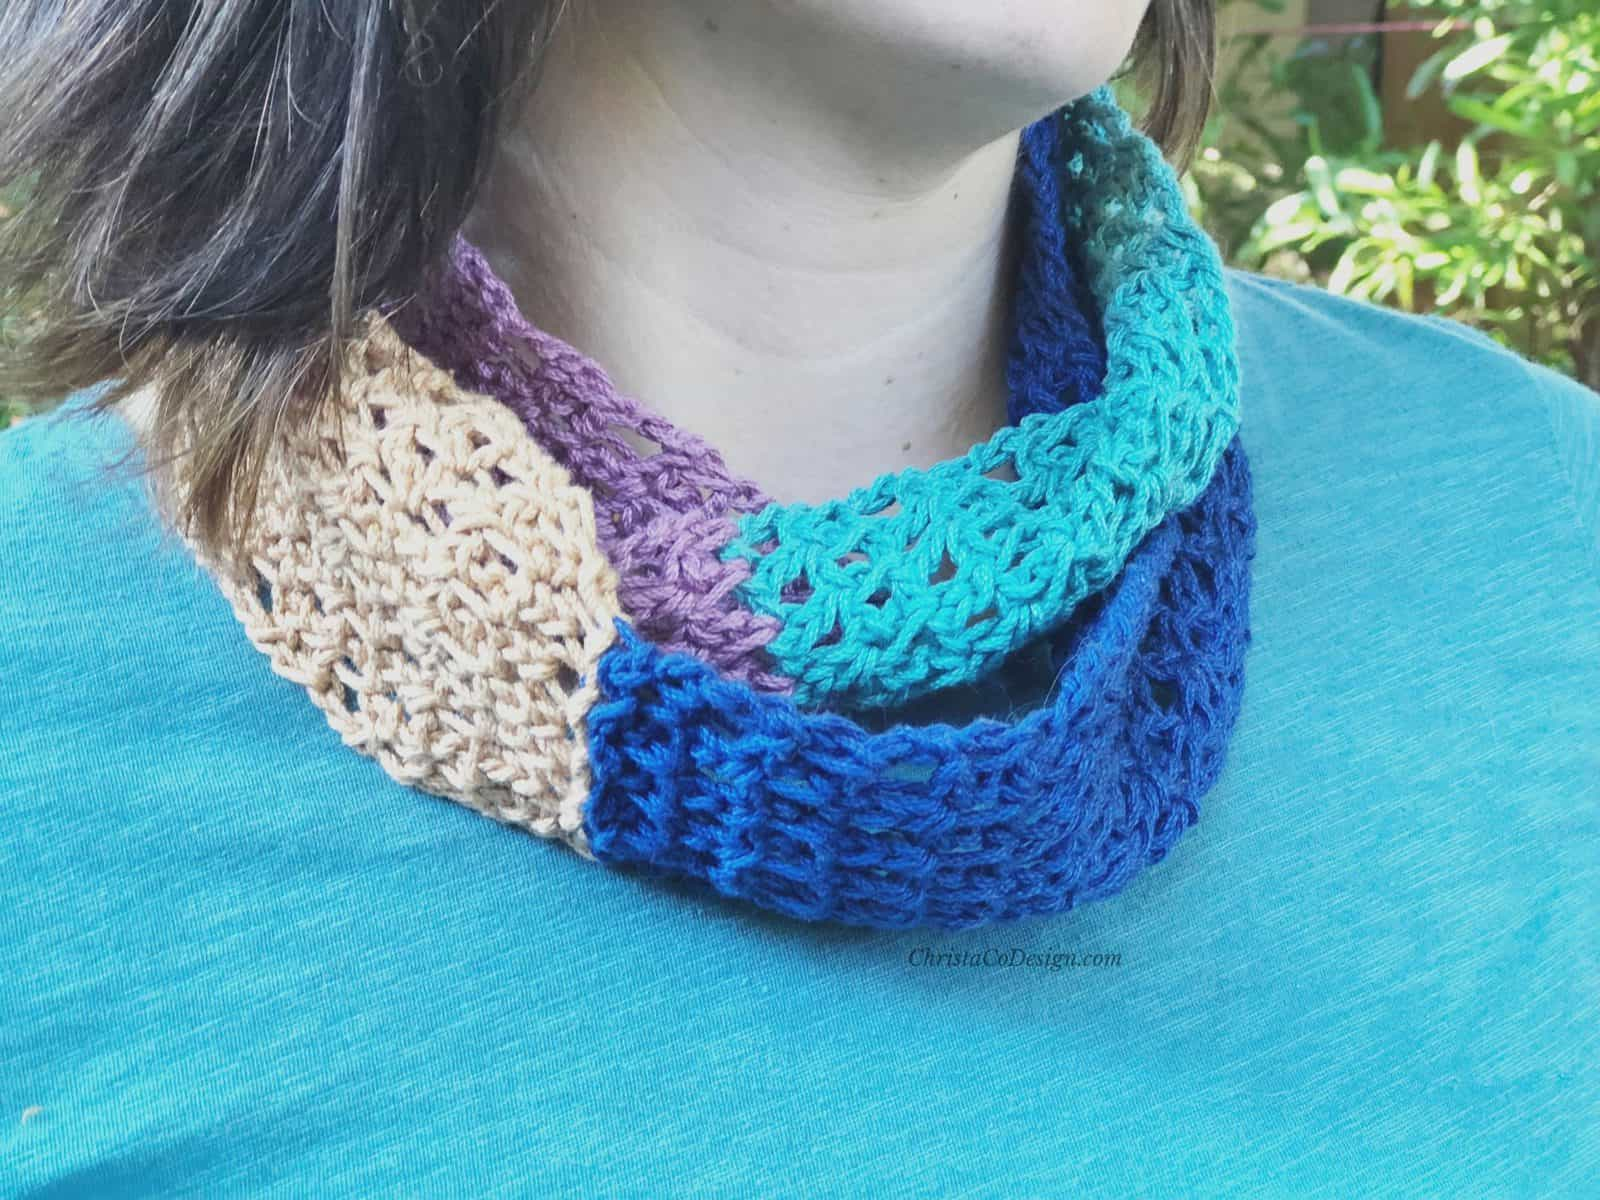 Crochet cowl in multiple colors wrapped around woman's neck.